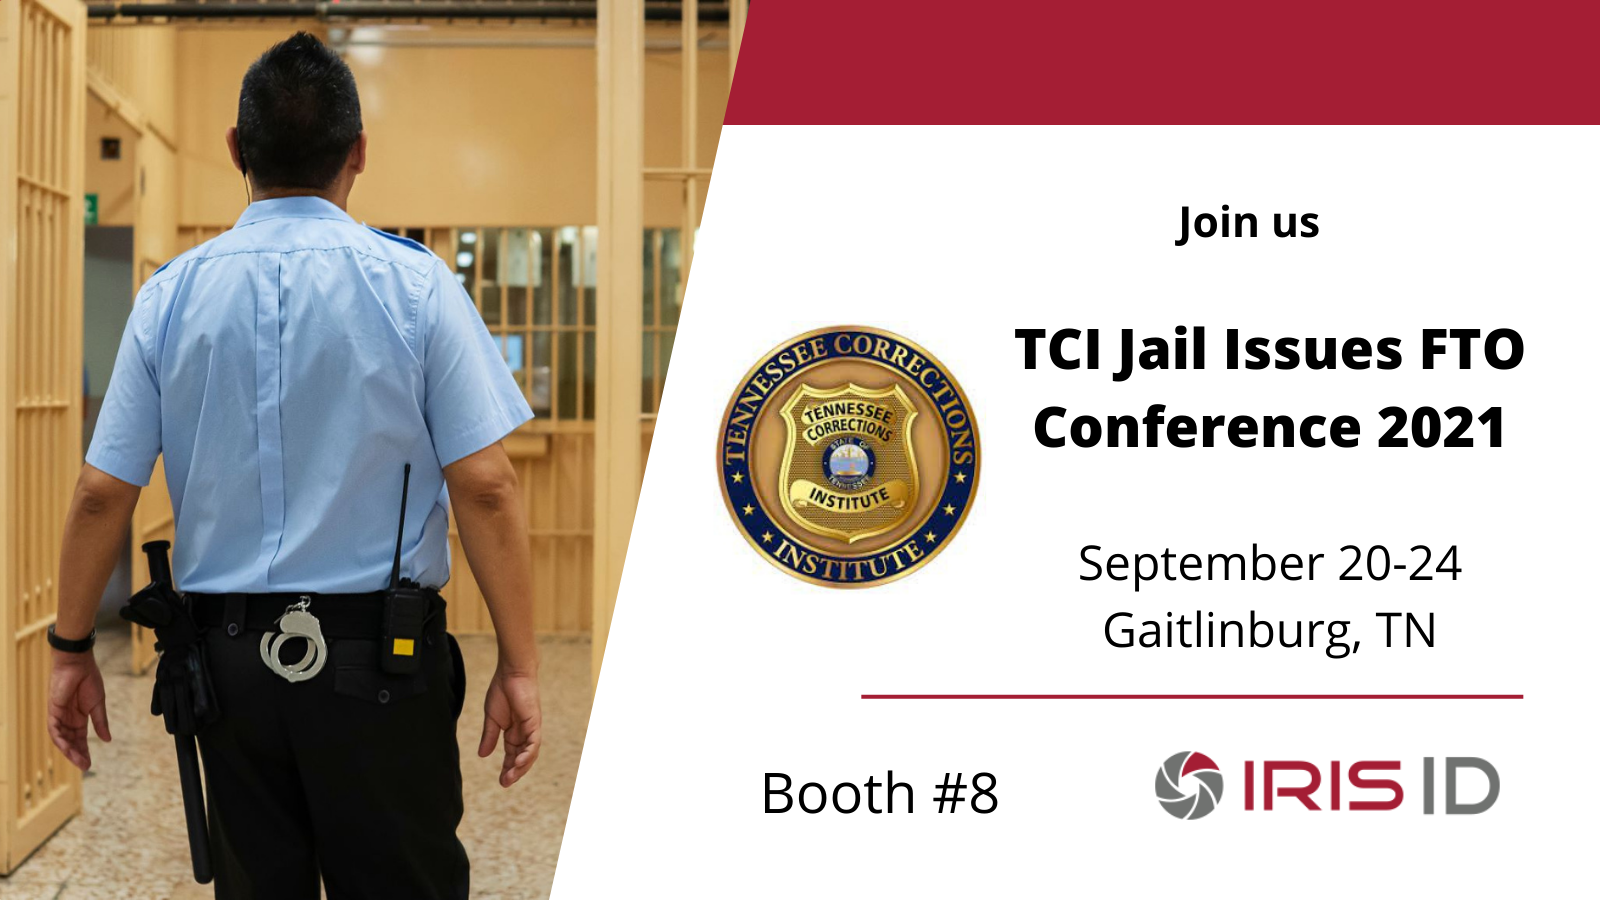 TCI Jail Issues FTO Conference 2021